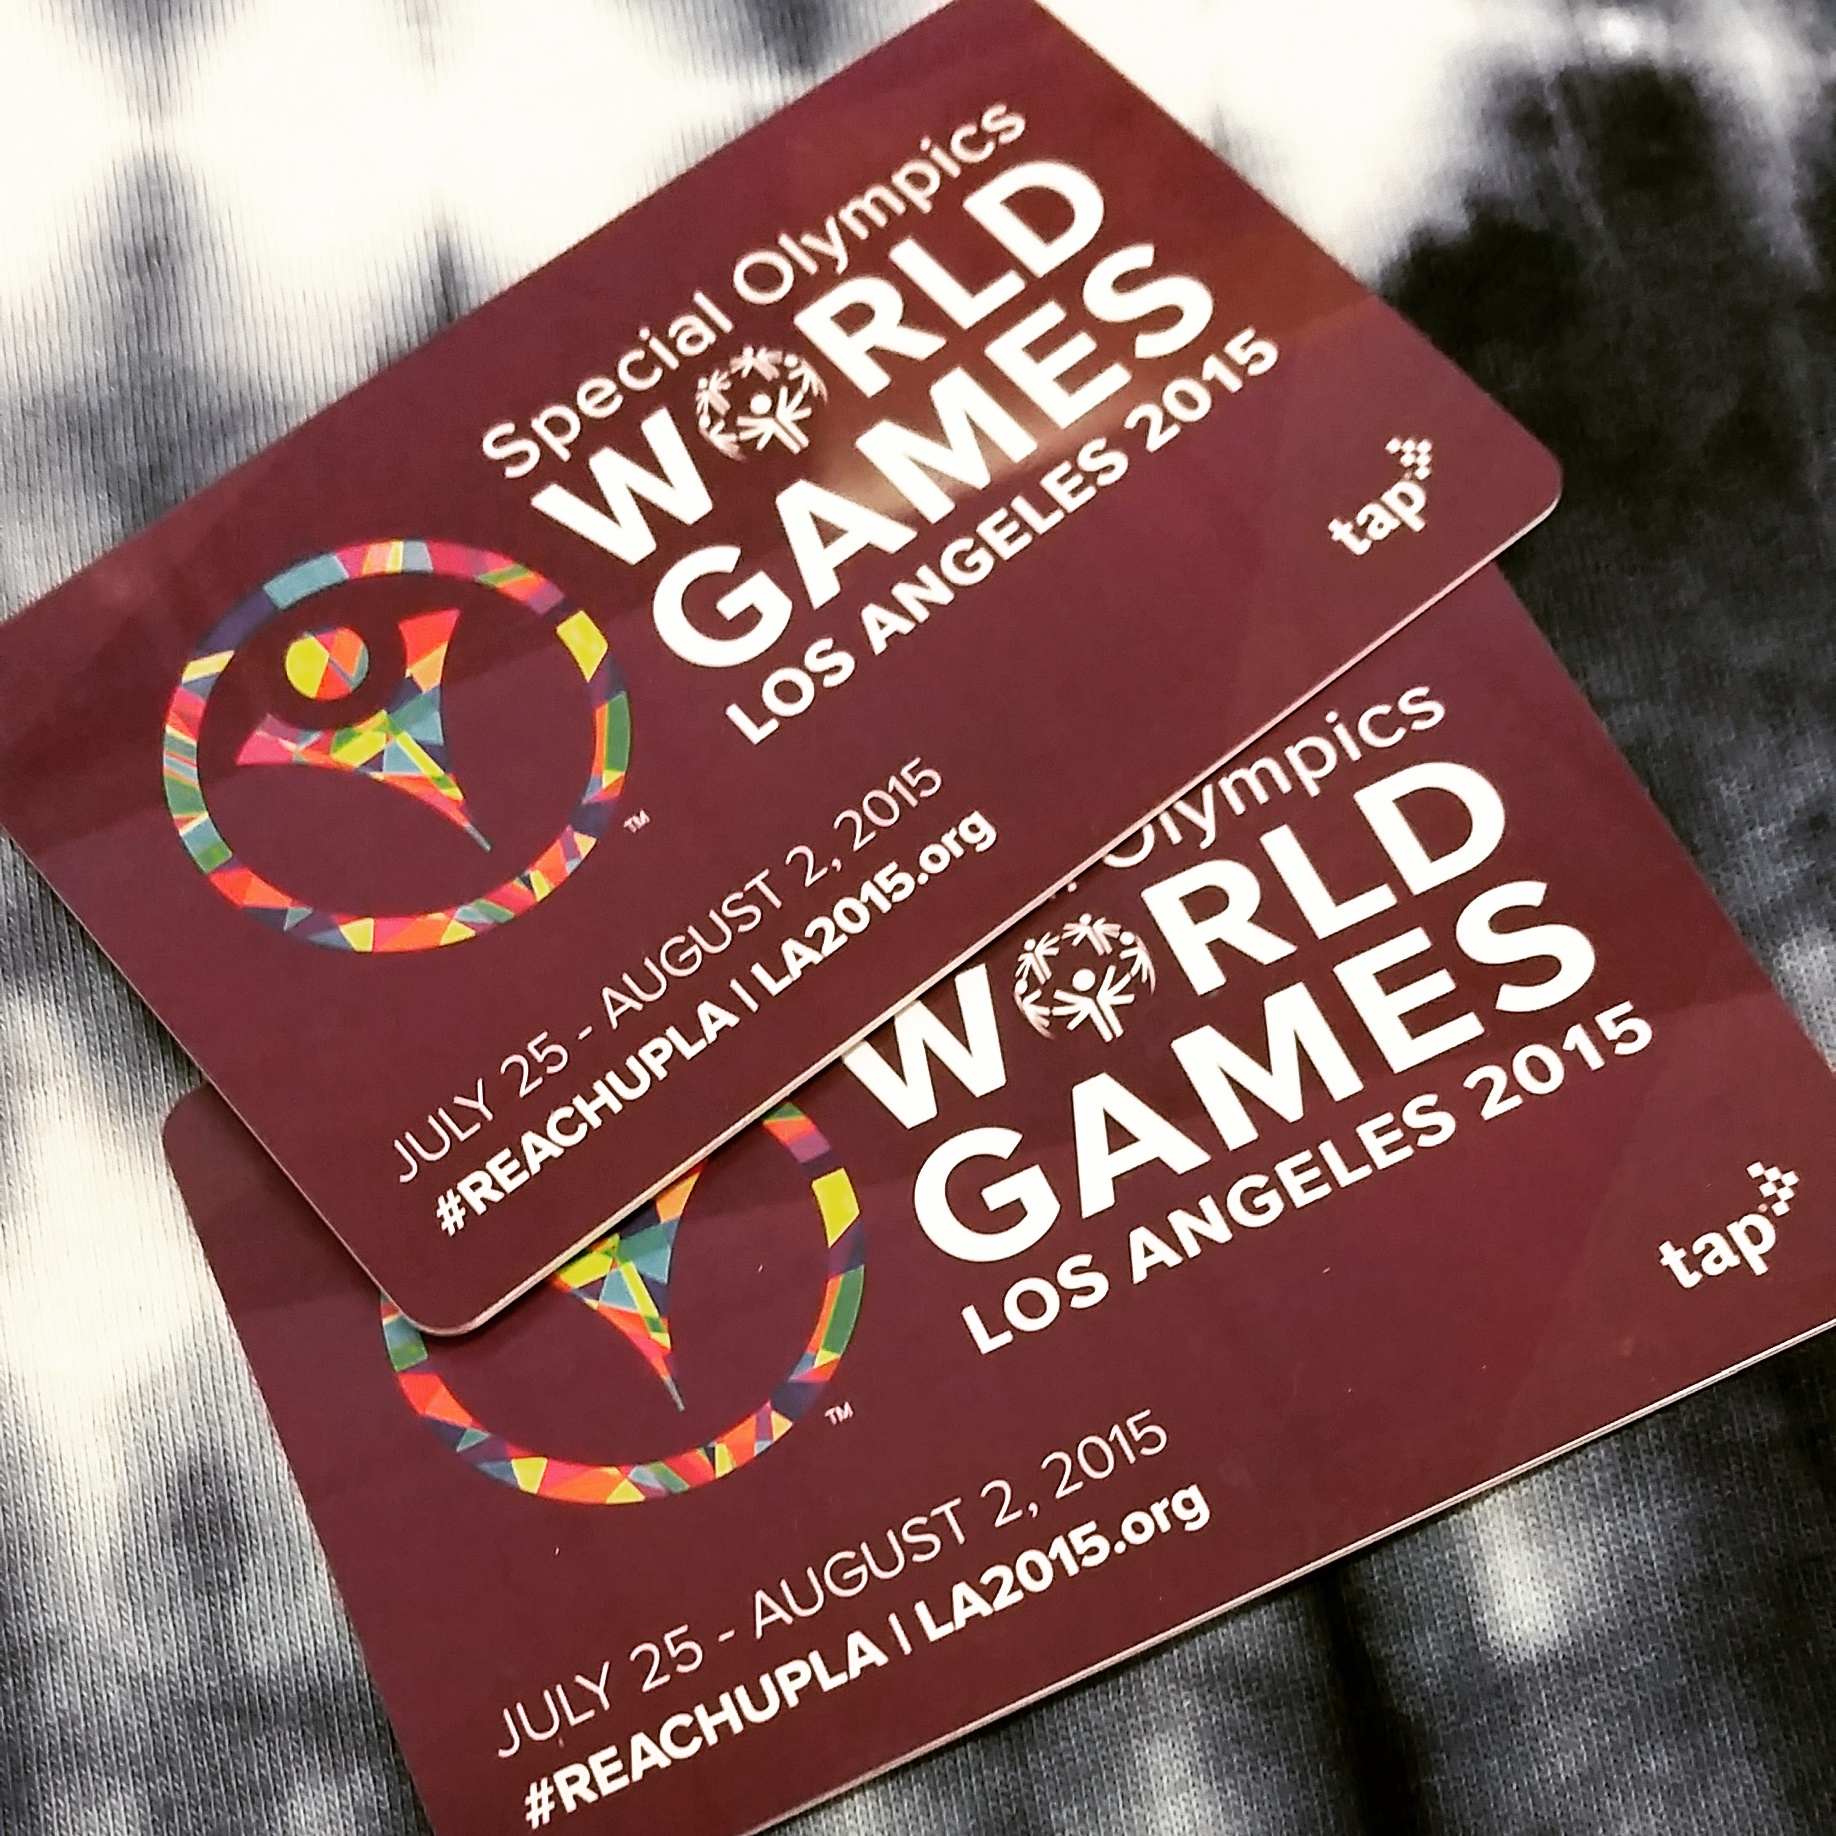 Special Olympics World Games limited edition TAP cards.